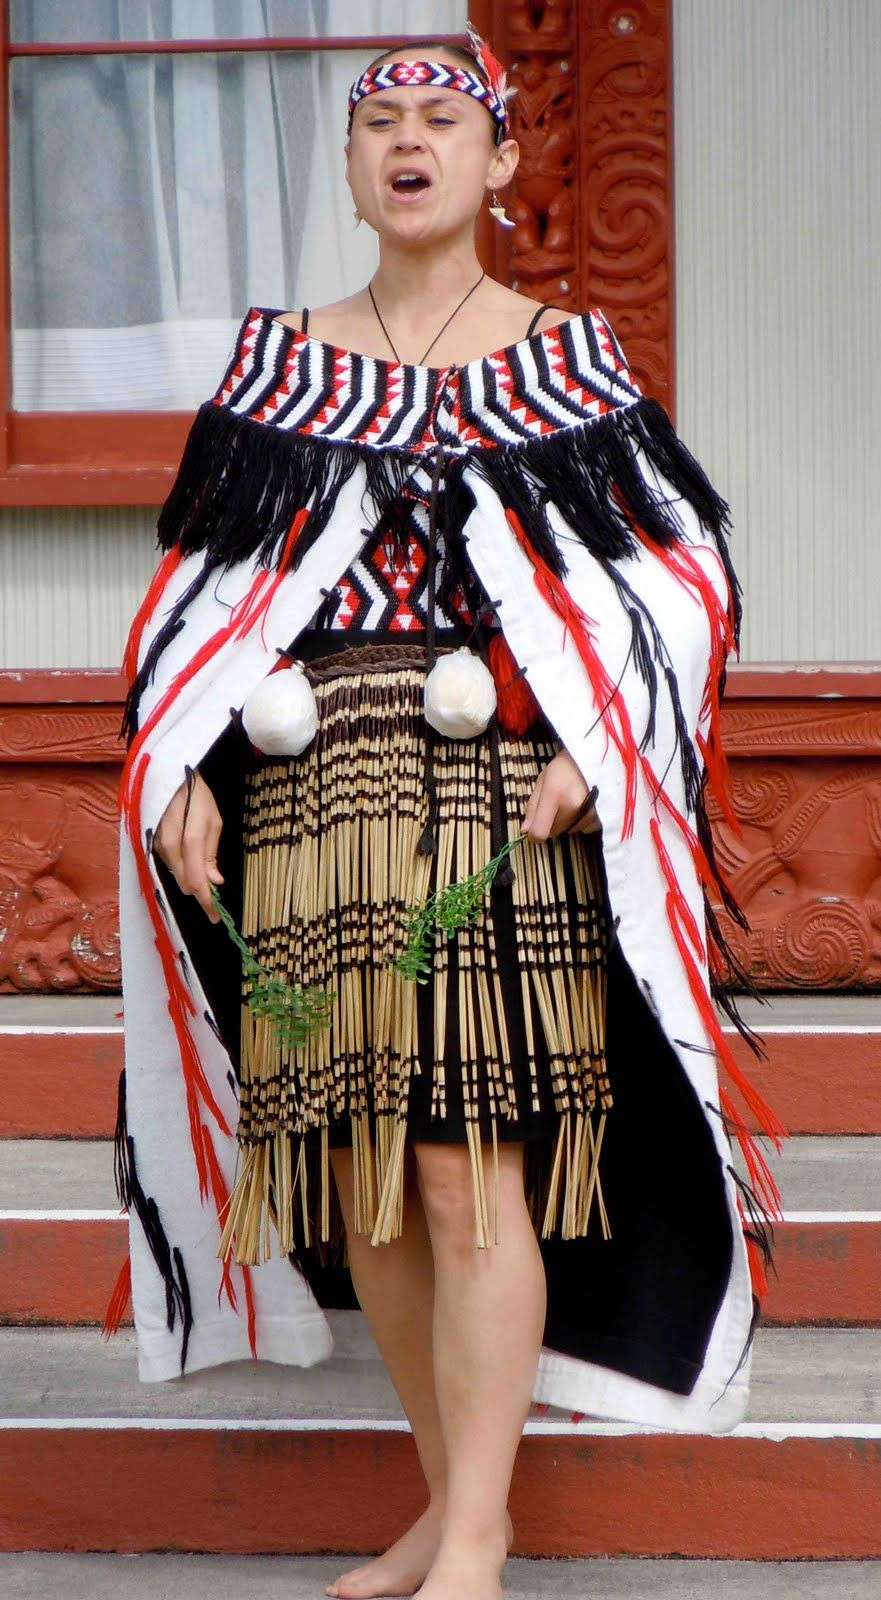 Ancient Maori Culture: ஐ Traditional Clothing ஐ